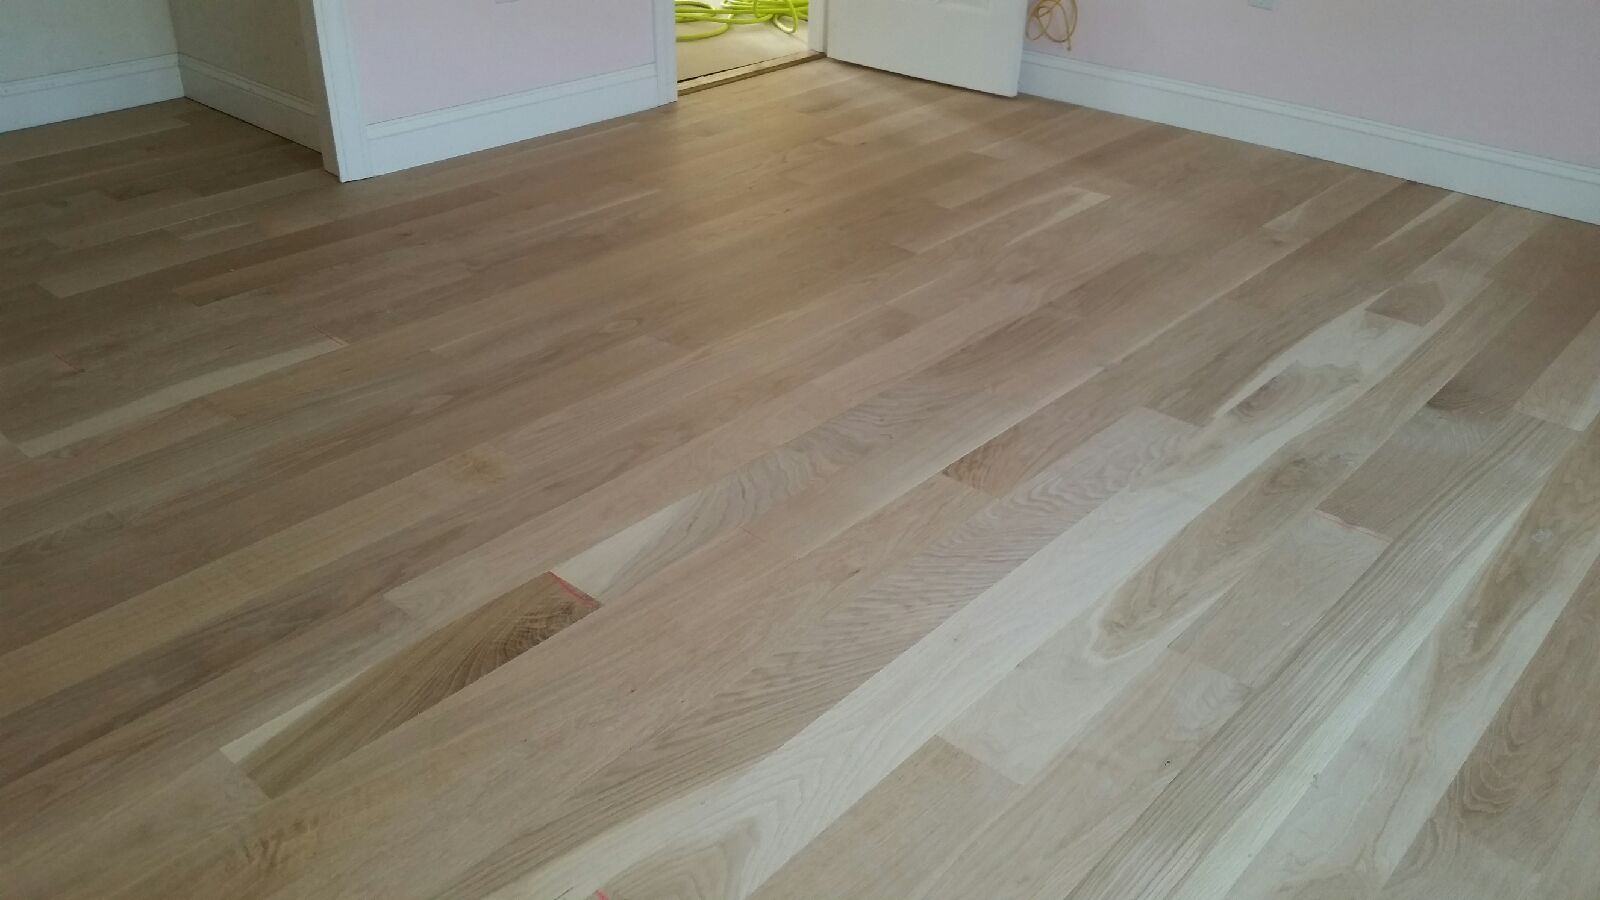 Wide Plank-Select White Oak Hardwood Flooring